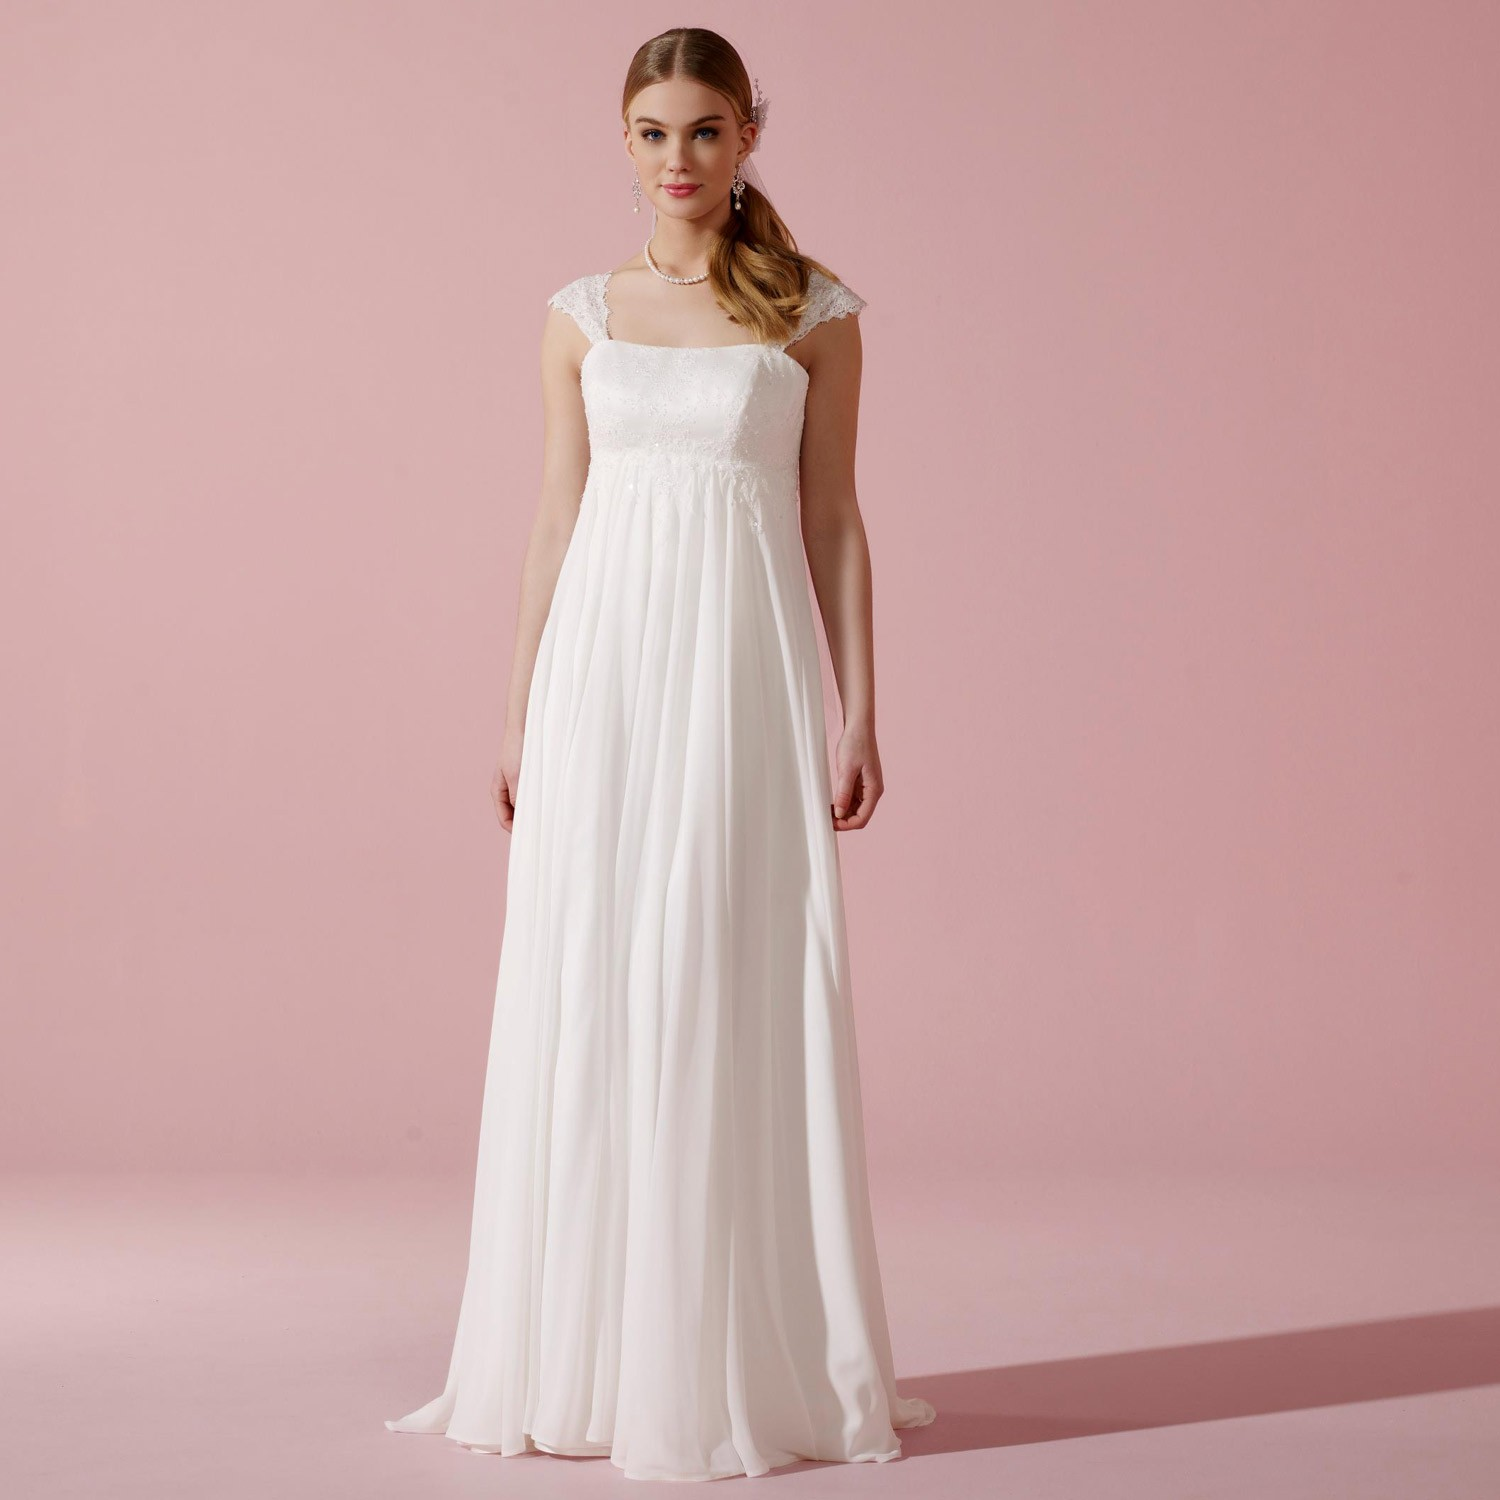 Robe de mari e empire en mousseline et bretelles amila for Robes de mariage empire uk